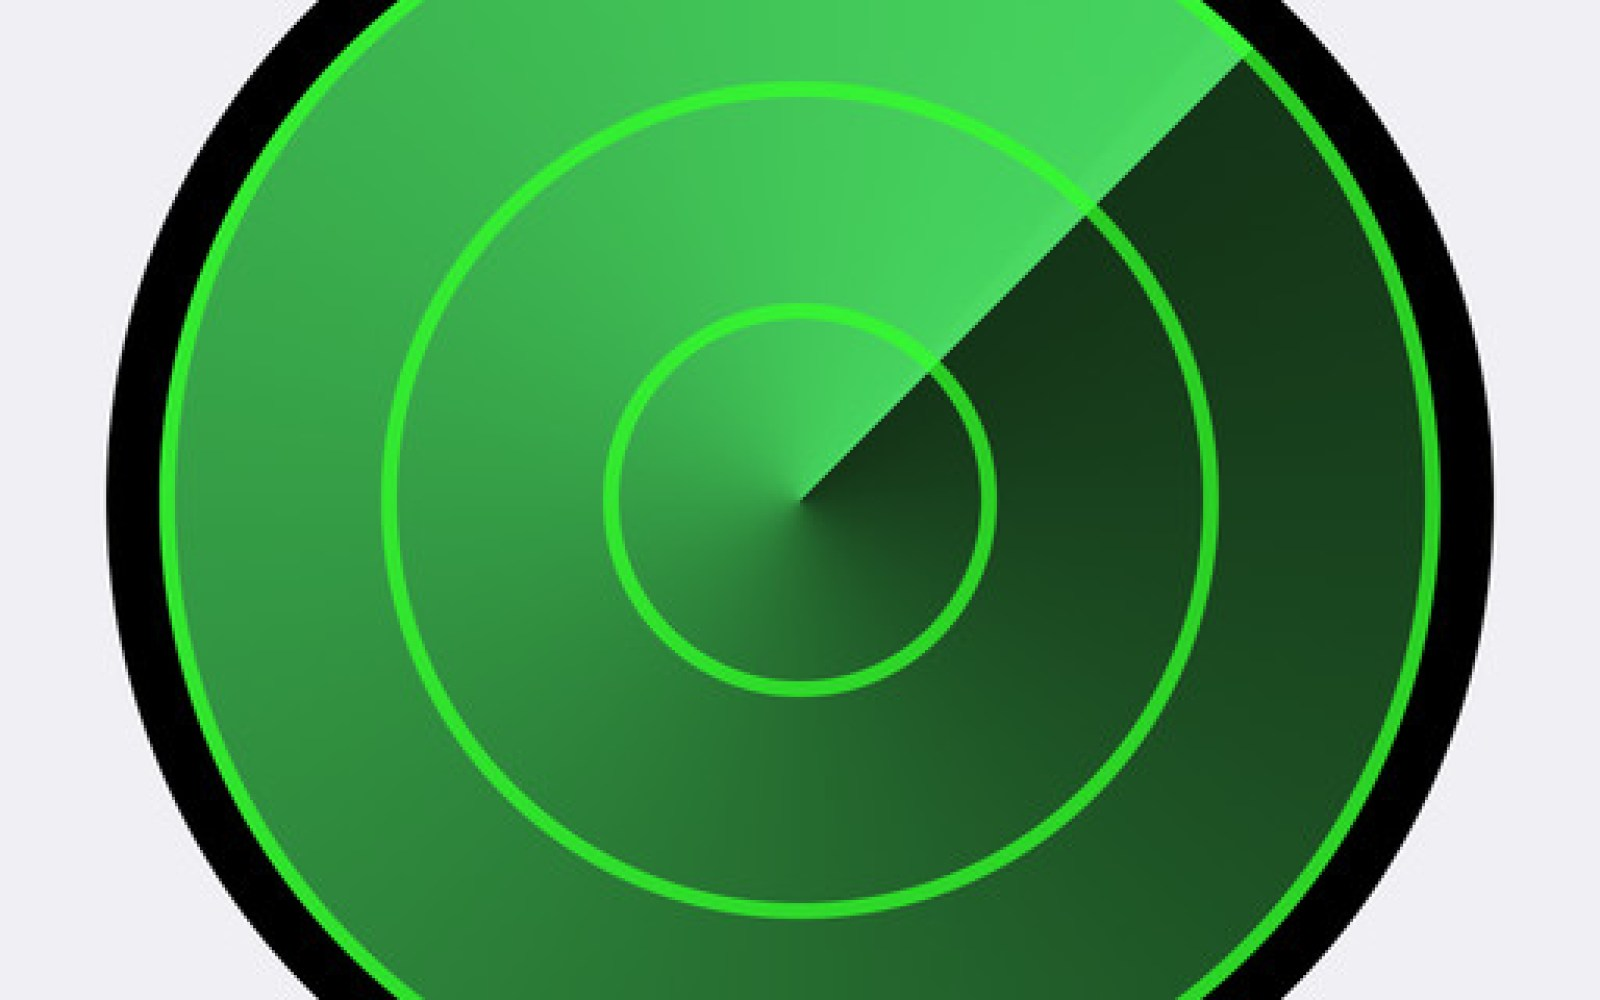 Botched Find my iPhone update only allows developers to log in [Update: fixed]